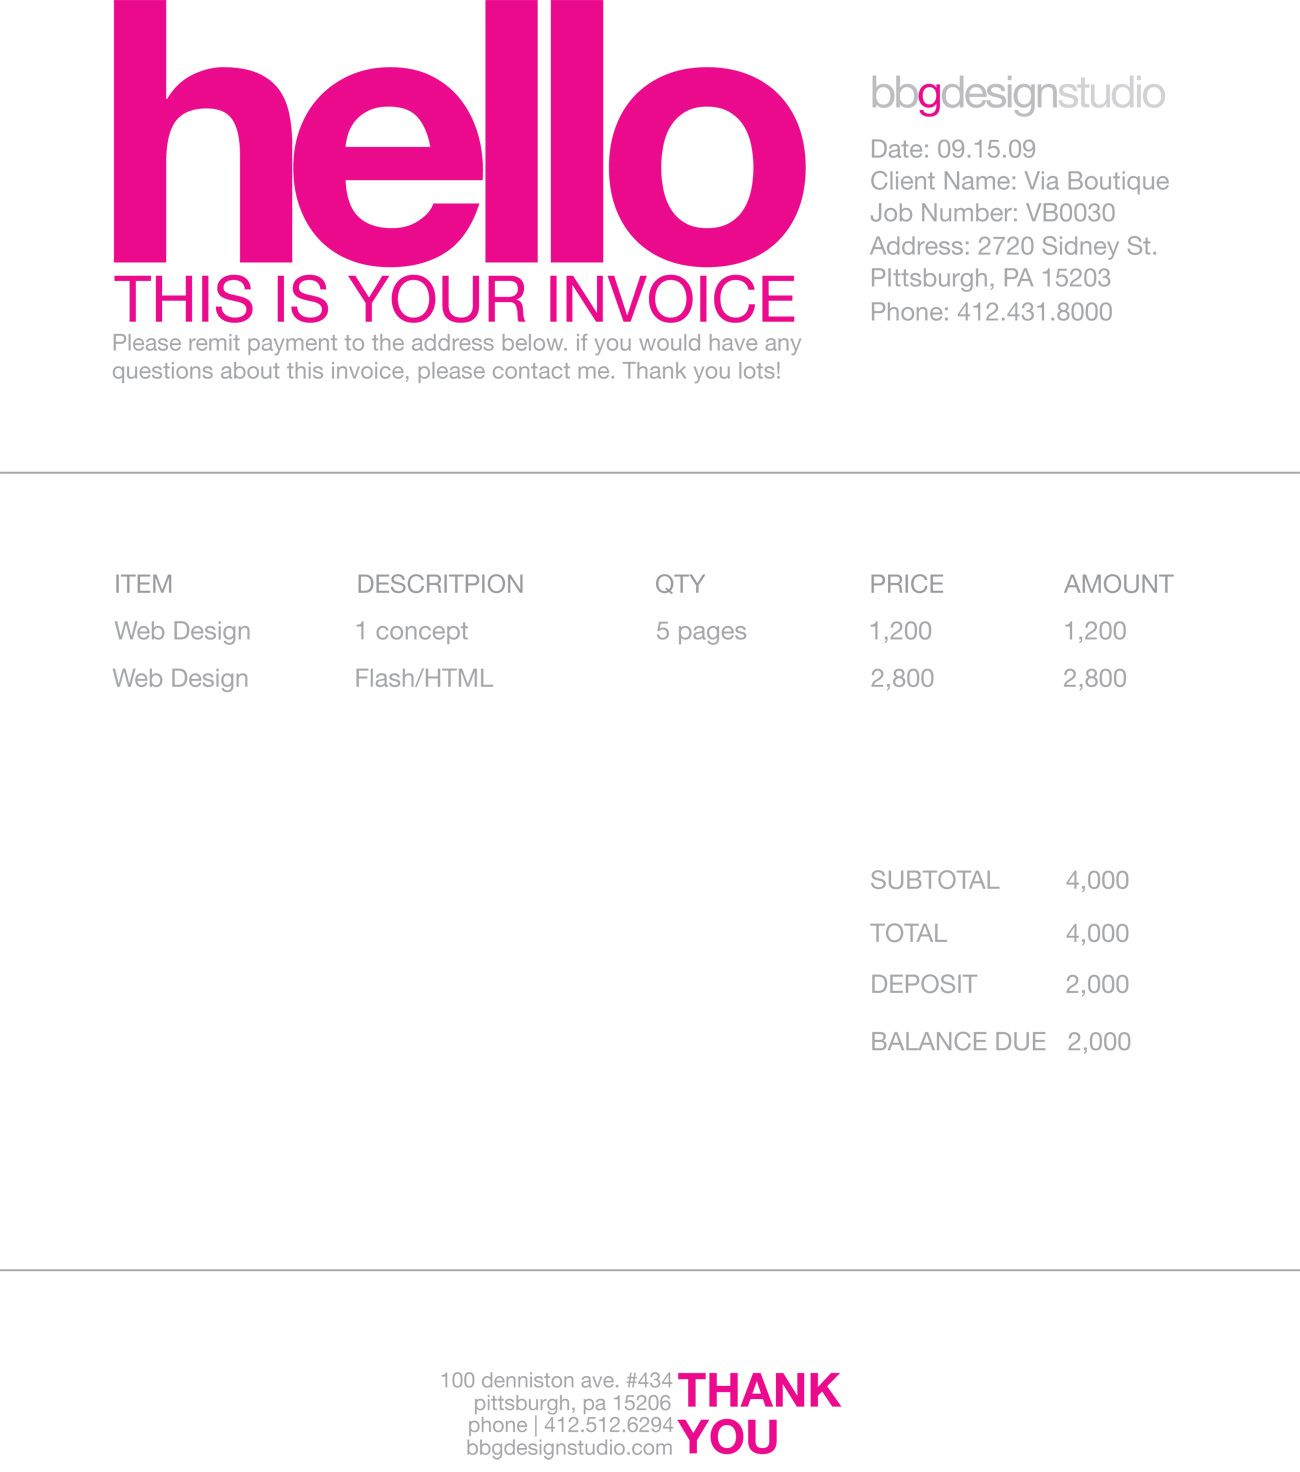 Maidofhonortoastus  Pleasant  Images About Invoice Design On Pinterest With Exquisite Sample Tax Invoice Besides Managing Invoices Furthermore Invoice Access Database With Amusing Recipient Created Tax Invoice Example Also Php Invoice Open Source In Addition Invoice Software Canada And On Line Invoices As Well As Find Invoice Additionally Free Online Invoice Program From Pinterestcom With Maidofhonortoastus  Exquisite  Images About Invoice Design On Pinterest With Amusing Sample Tax Invoice Besides Managing Invoices Furthermore Invoice Access Database And Pleasant Recipient Created Tax Invoice Example Also Php Invoice Open Source In Addition Invoice Software Canada From Pinterestcom